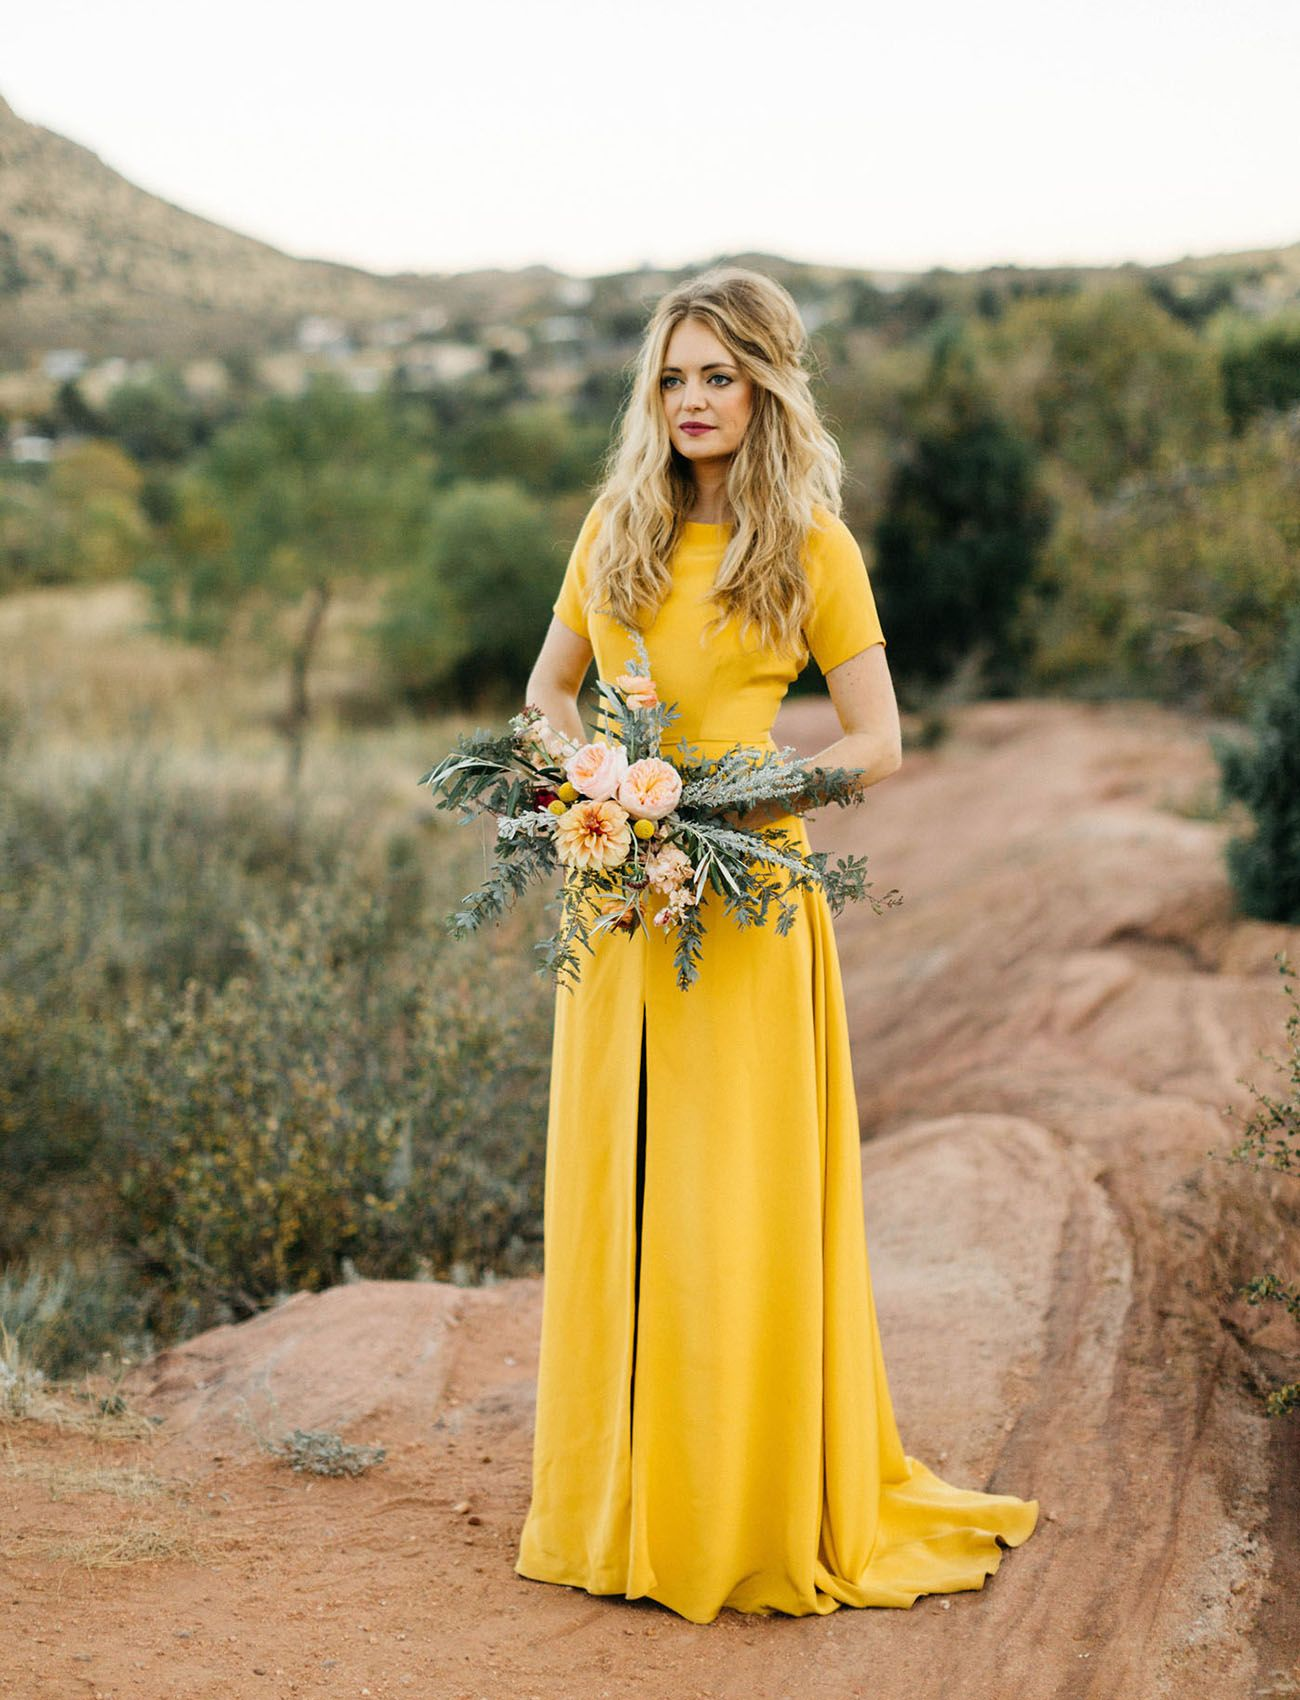 4c345e505d768 A Desert Road Trip Elopement | WEDDING DRESS IDEAS + INSPIRATION ...